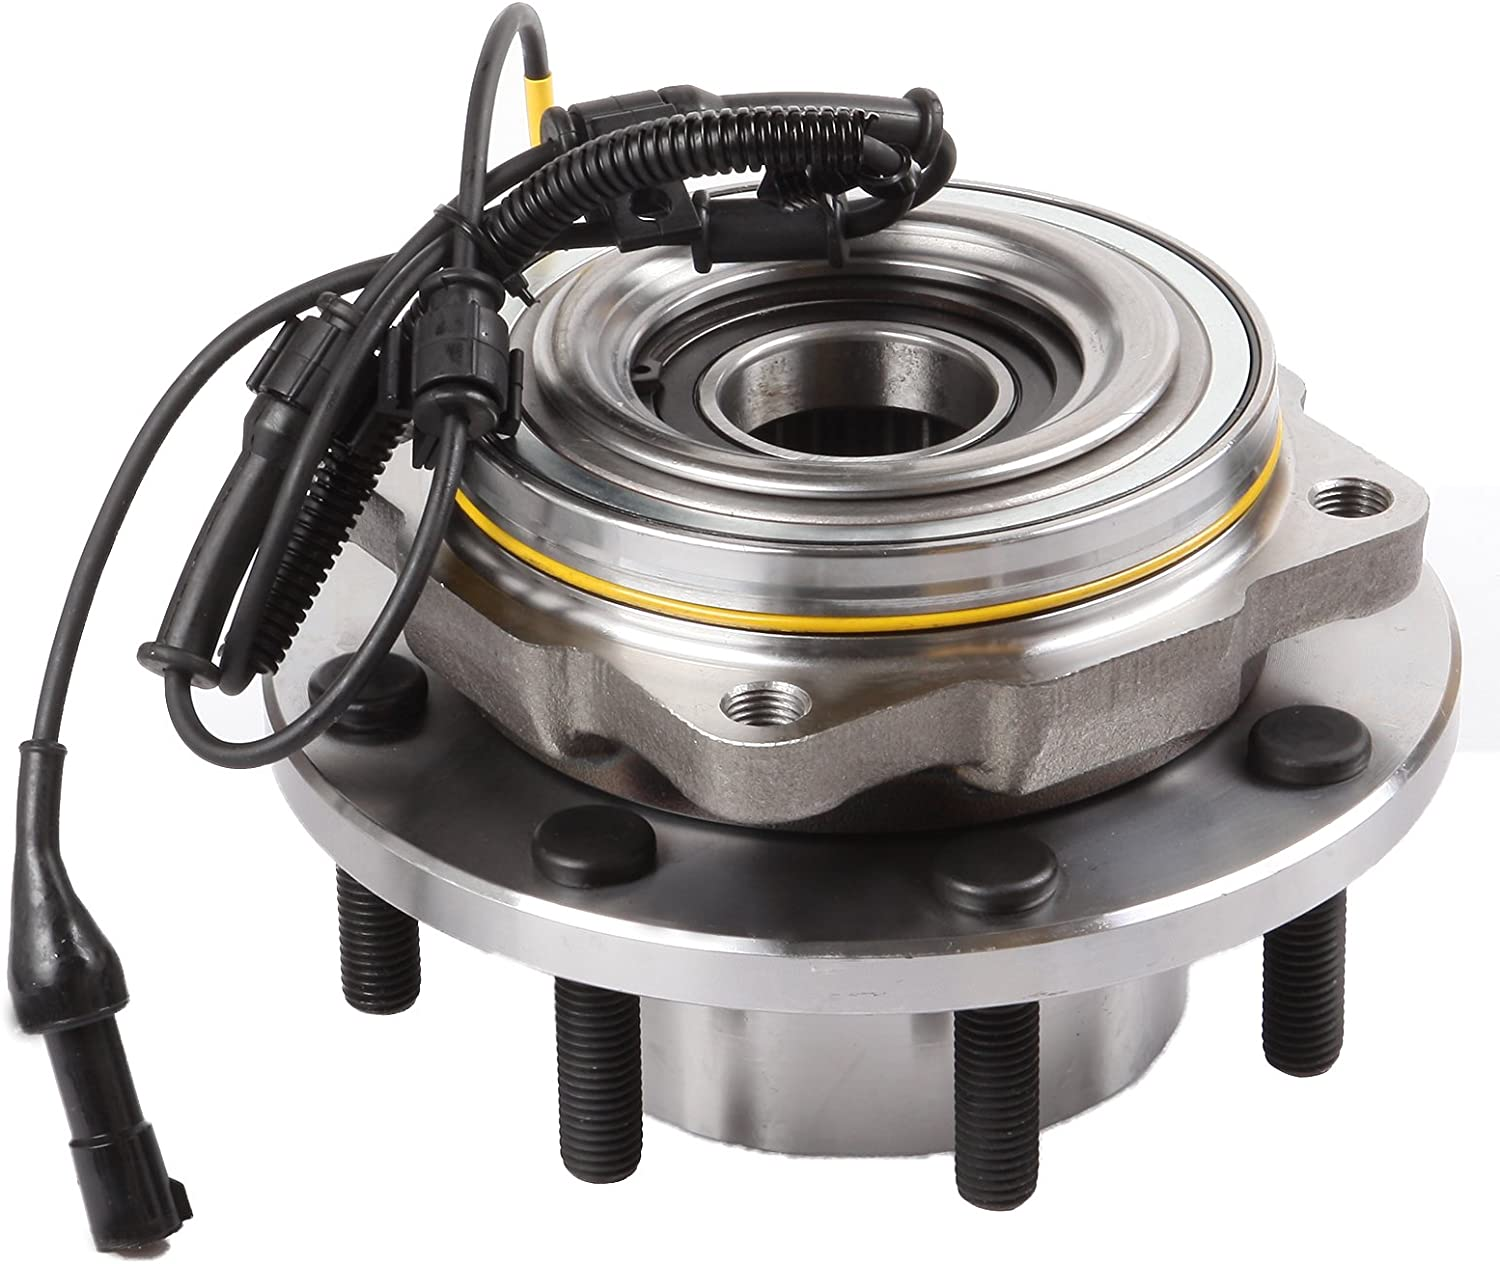 AUTOMUTO Wheel Hub Bearing 515082 Front 8 Lugs Has ABS Sensor Replacement fit Ford F-250 Super Duty 2005-2010 Ford F-350 Super Duty 2005-2010